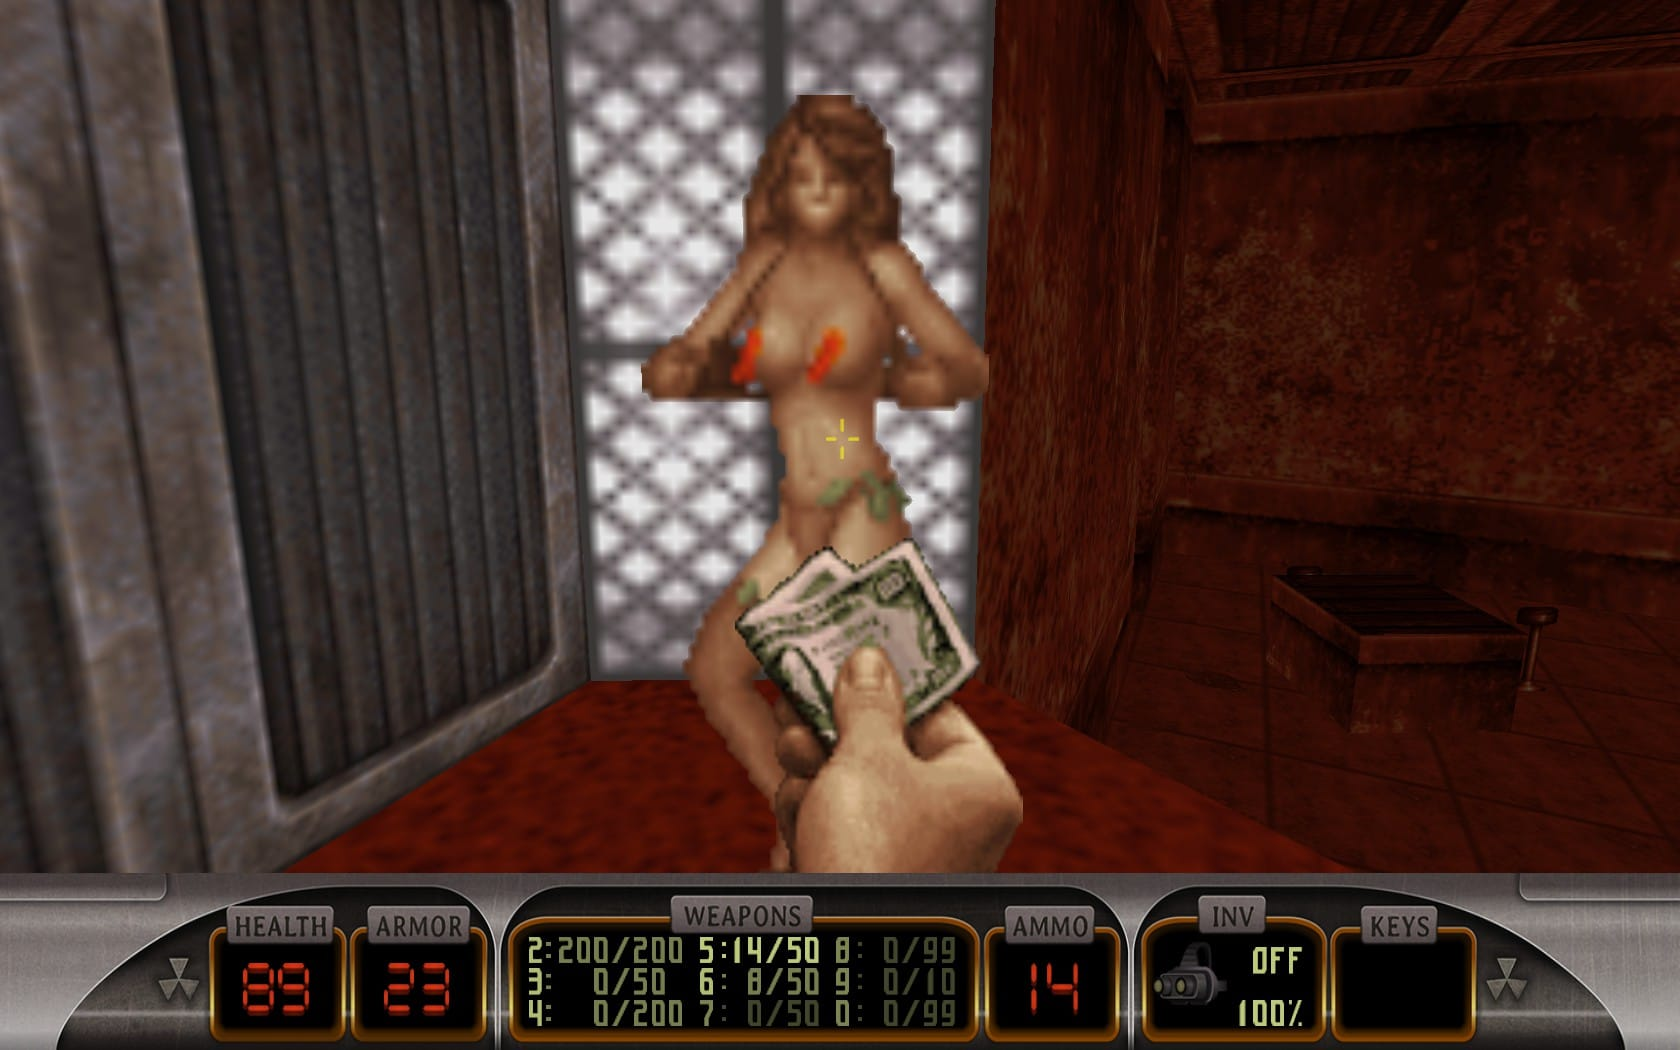 Windows 95 et avant, ou comment ressusciter un vieux PC - Page 3 Stripteaseuse-duke-nukem-3D